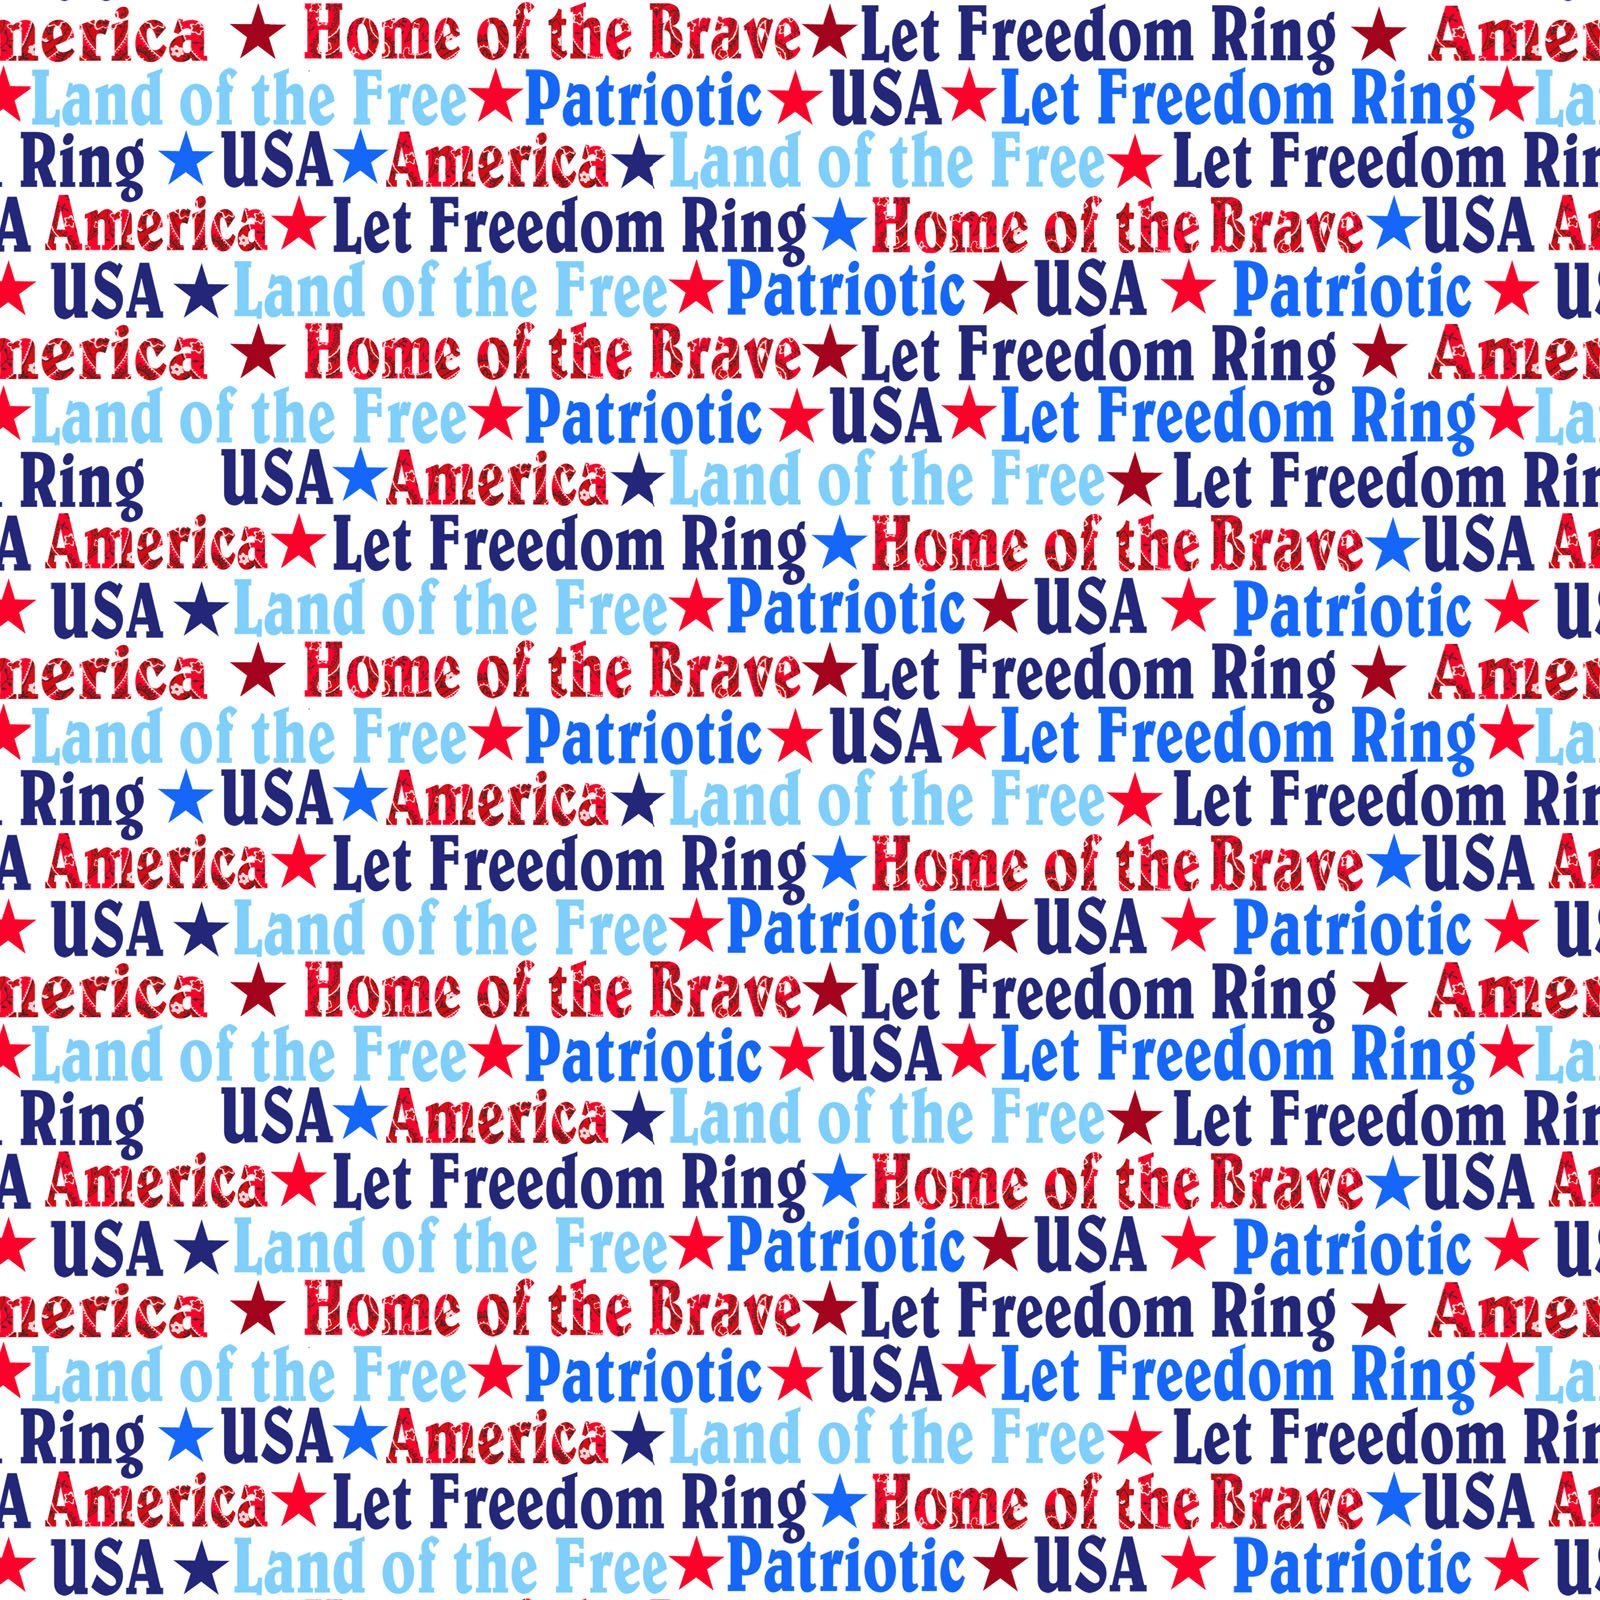 America Home of the Brave  4629-01